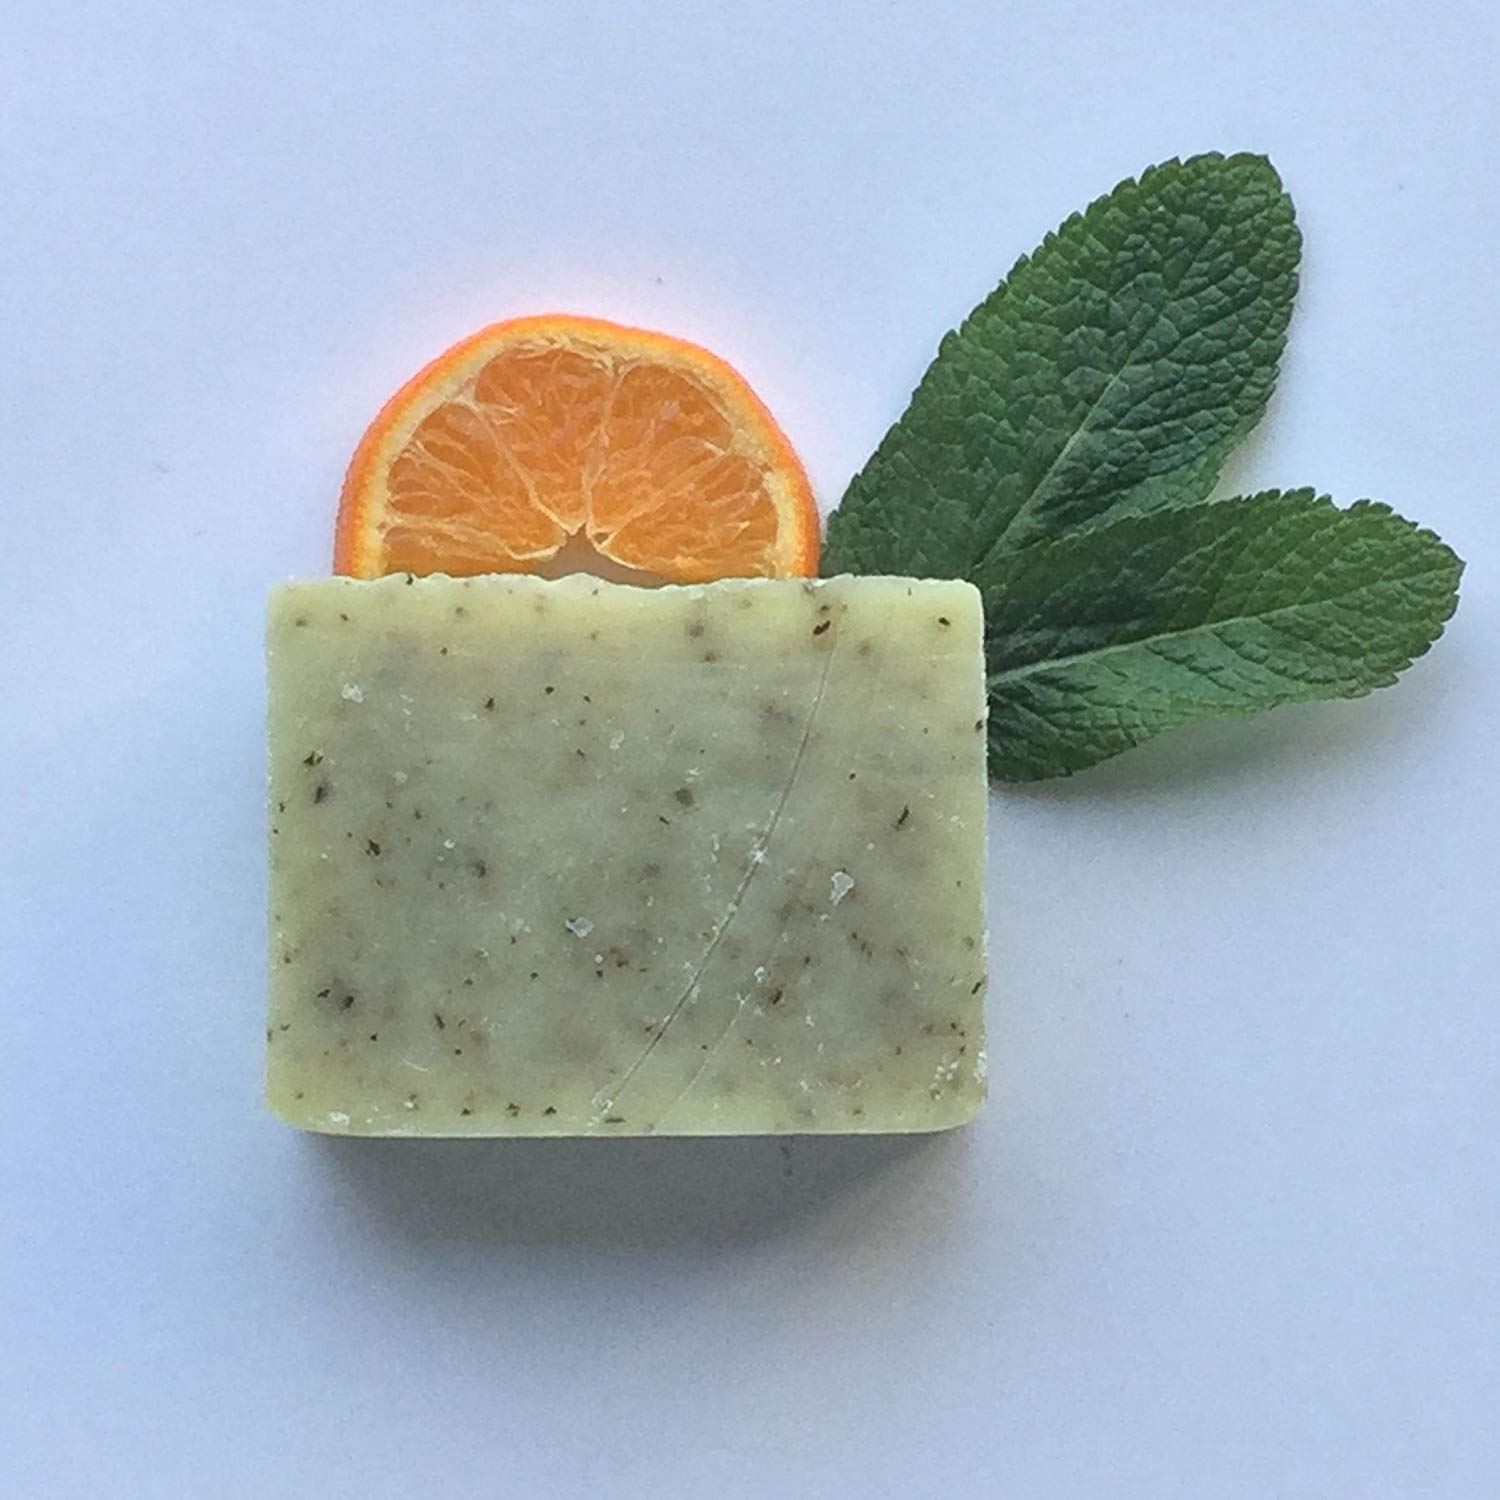 Orange You Sassy! Soap, Handcrafted, Organic Ingredients, 100% Natural, Orange, Spearmint, Vegan, Essential Oils, Handmade in small batches by The Willow Grove